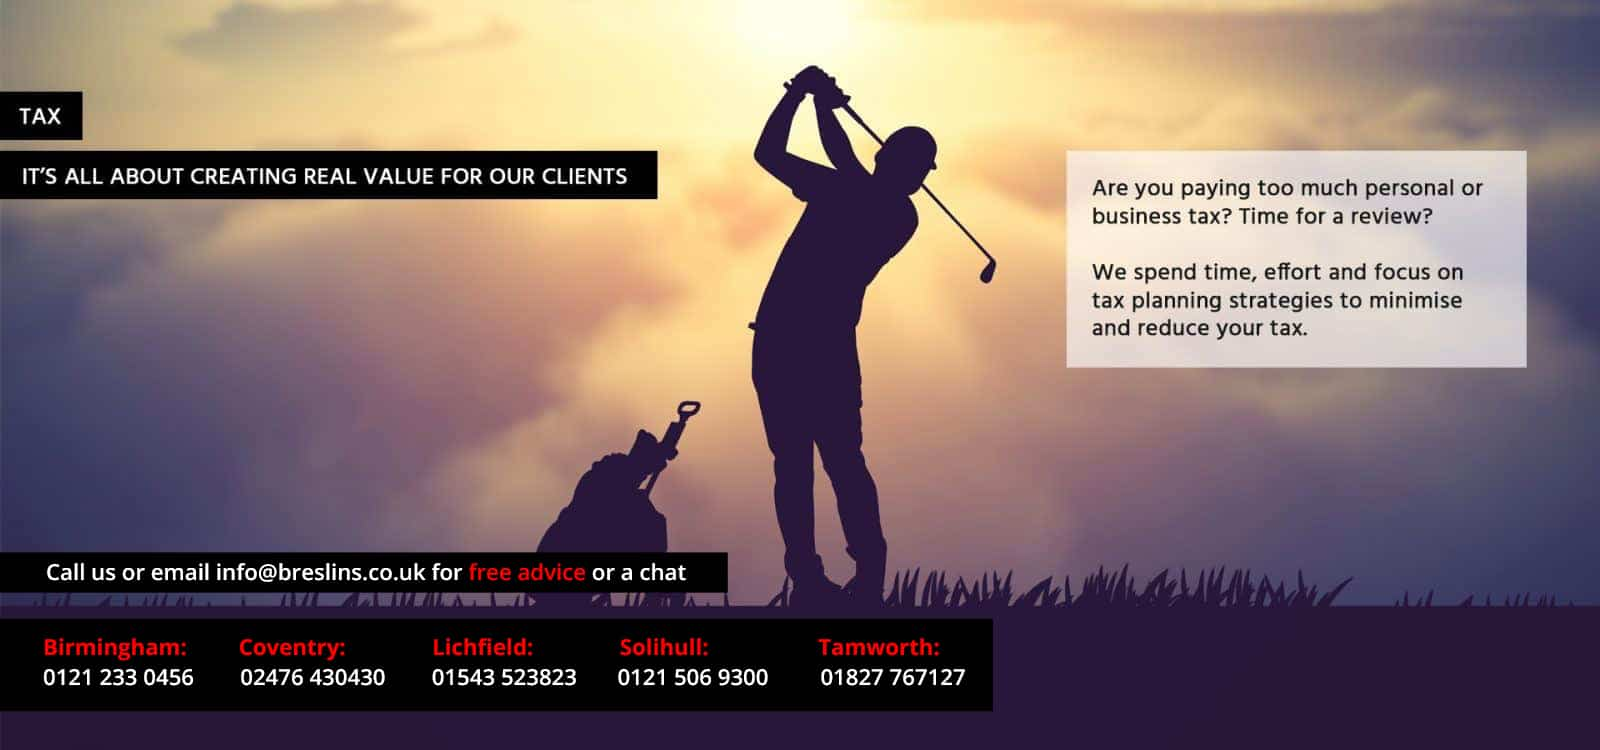 tax services poster with golfer teeing off